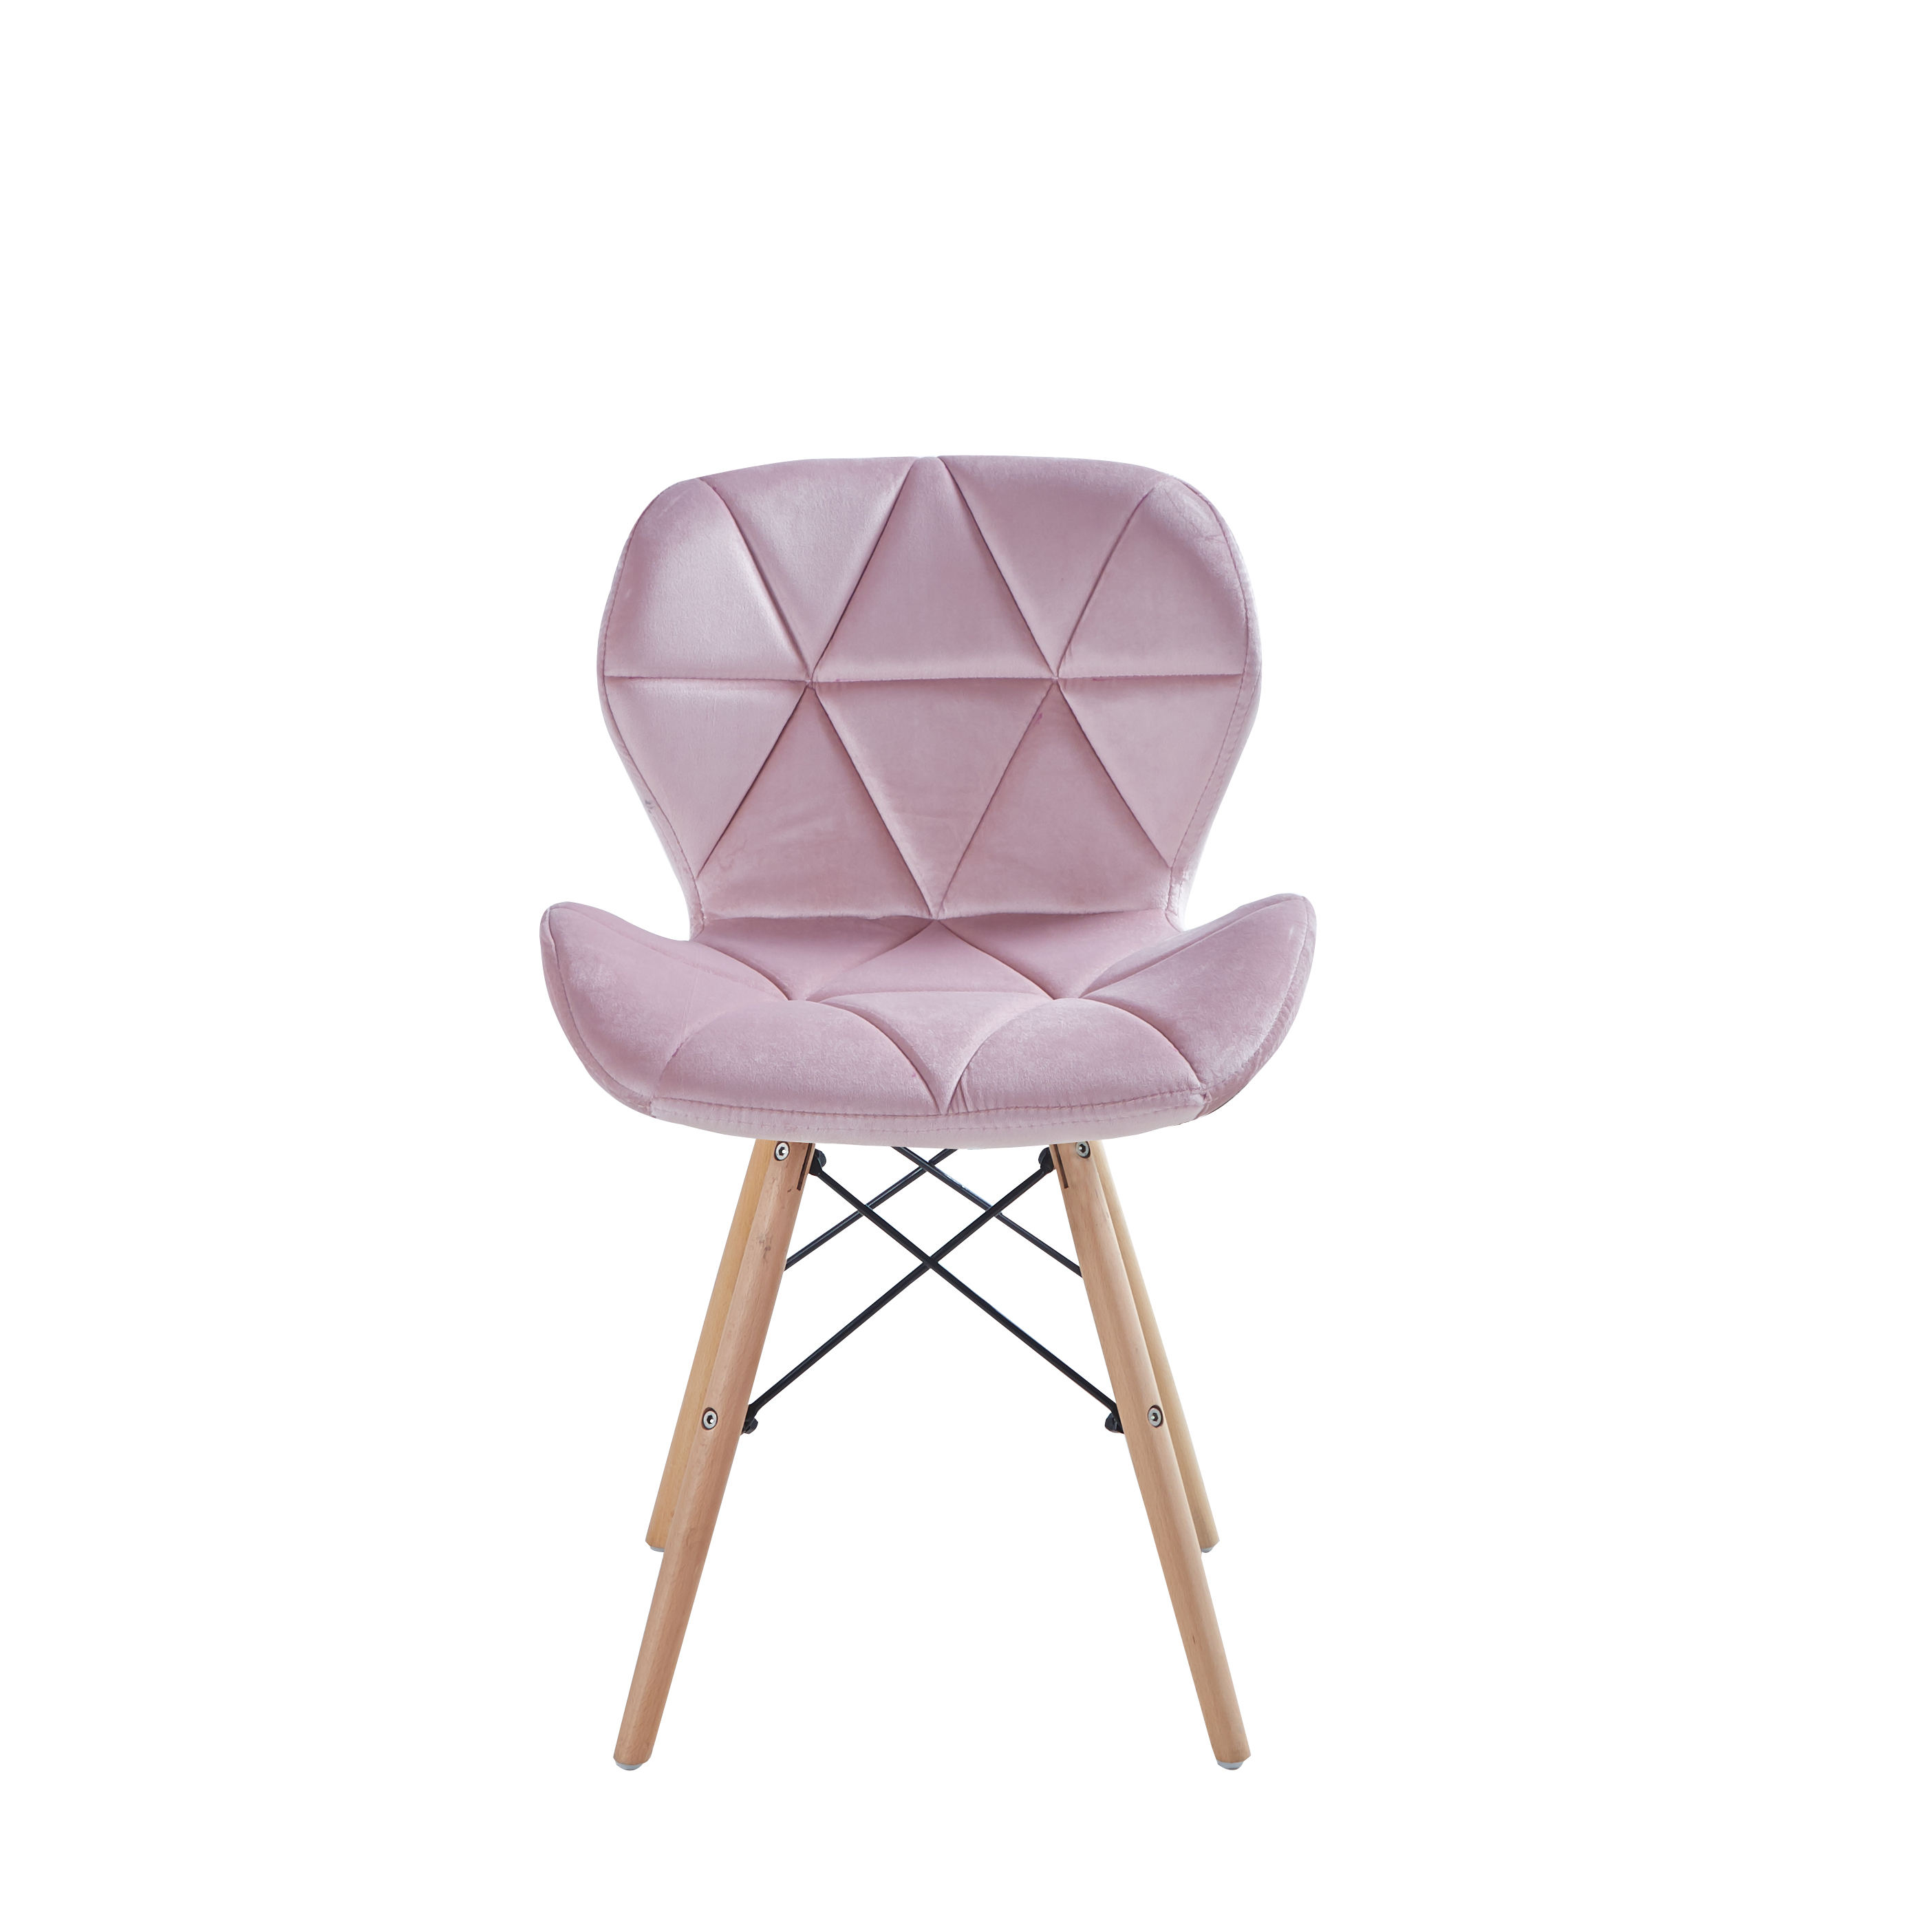 Fashion modern home chair velvet fabric wood leg cheap price comfortable